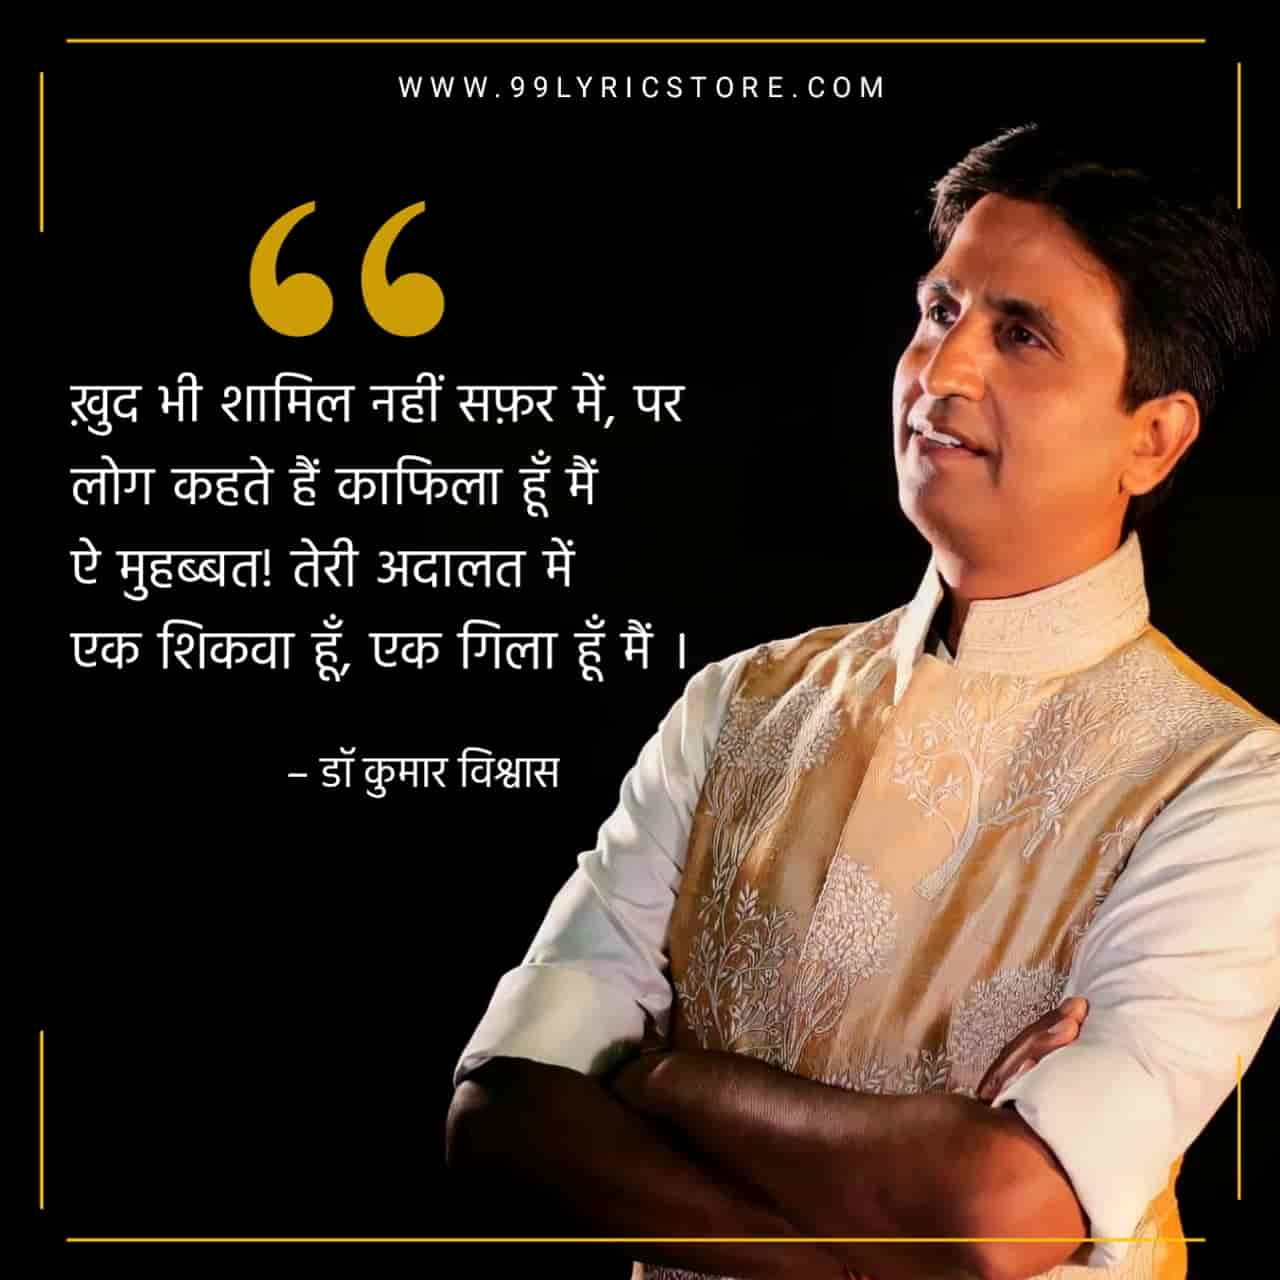 This Beautiful Poetry 'Kab Se Nahi Mila' recited by Dr. Kumar Vishwas and also written by him.